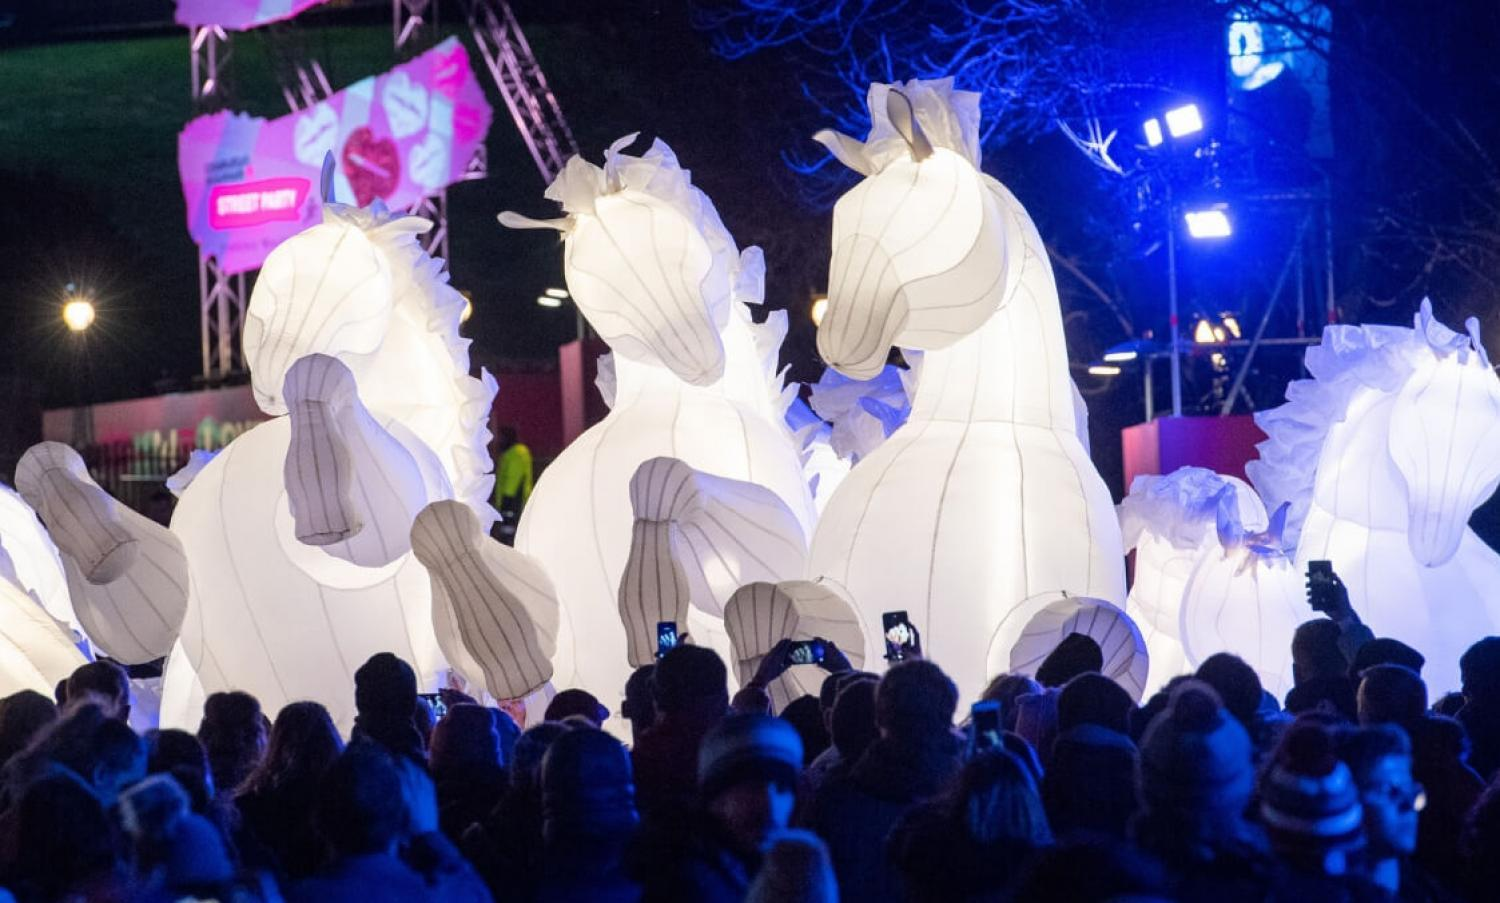 Compagnie des Quidams at the Edinburgh'ss Hogmanay Street Party